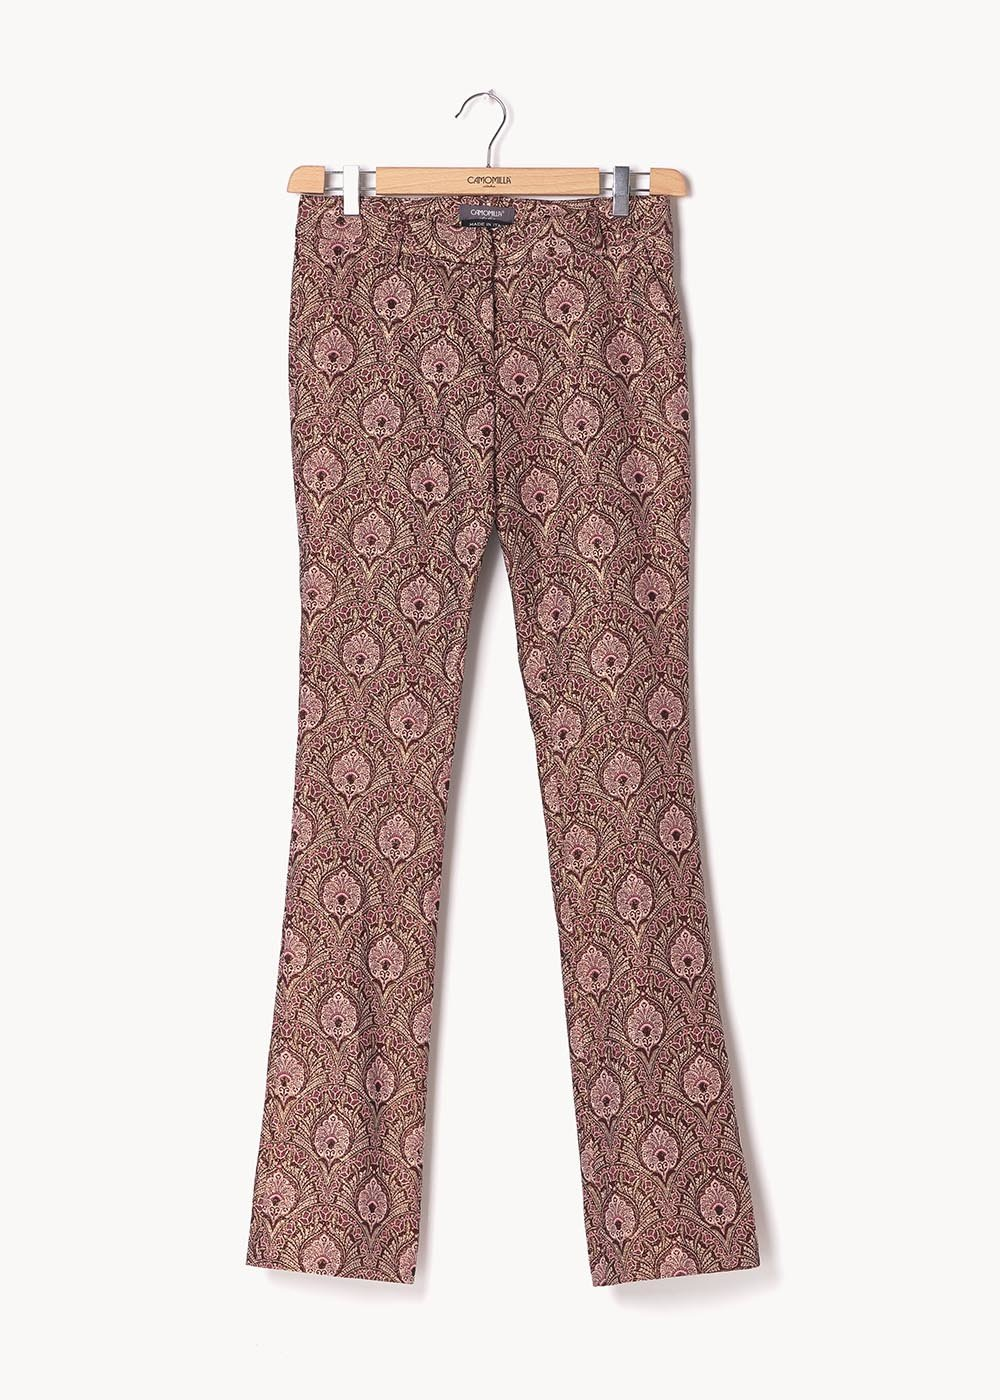 Cindy trousers with damask pattern - Ciliegia / Sepia Fantasia - Woman